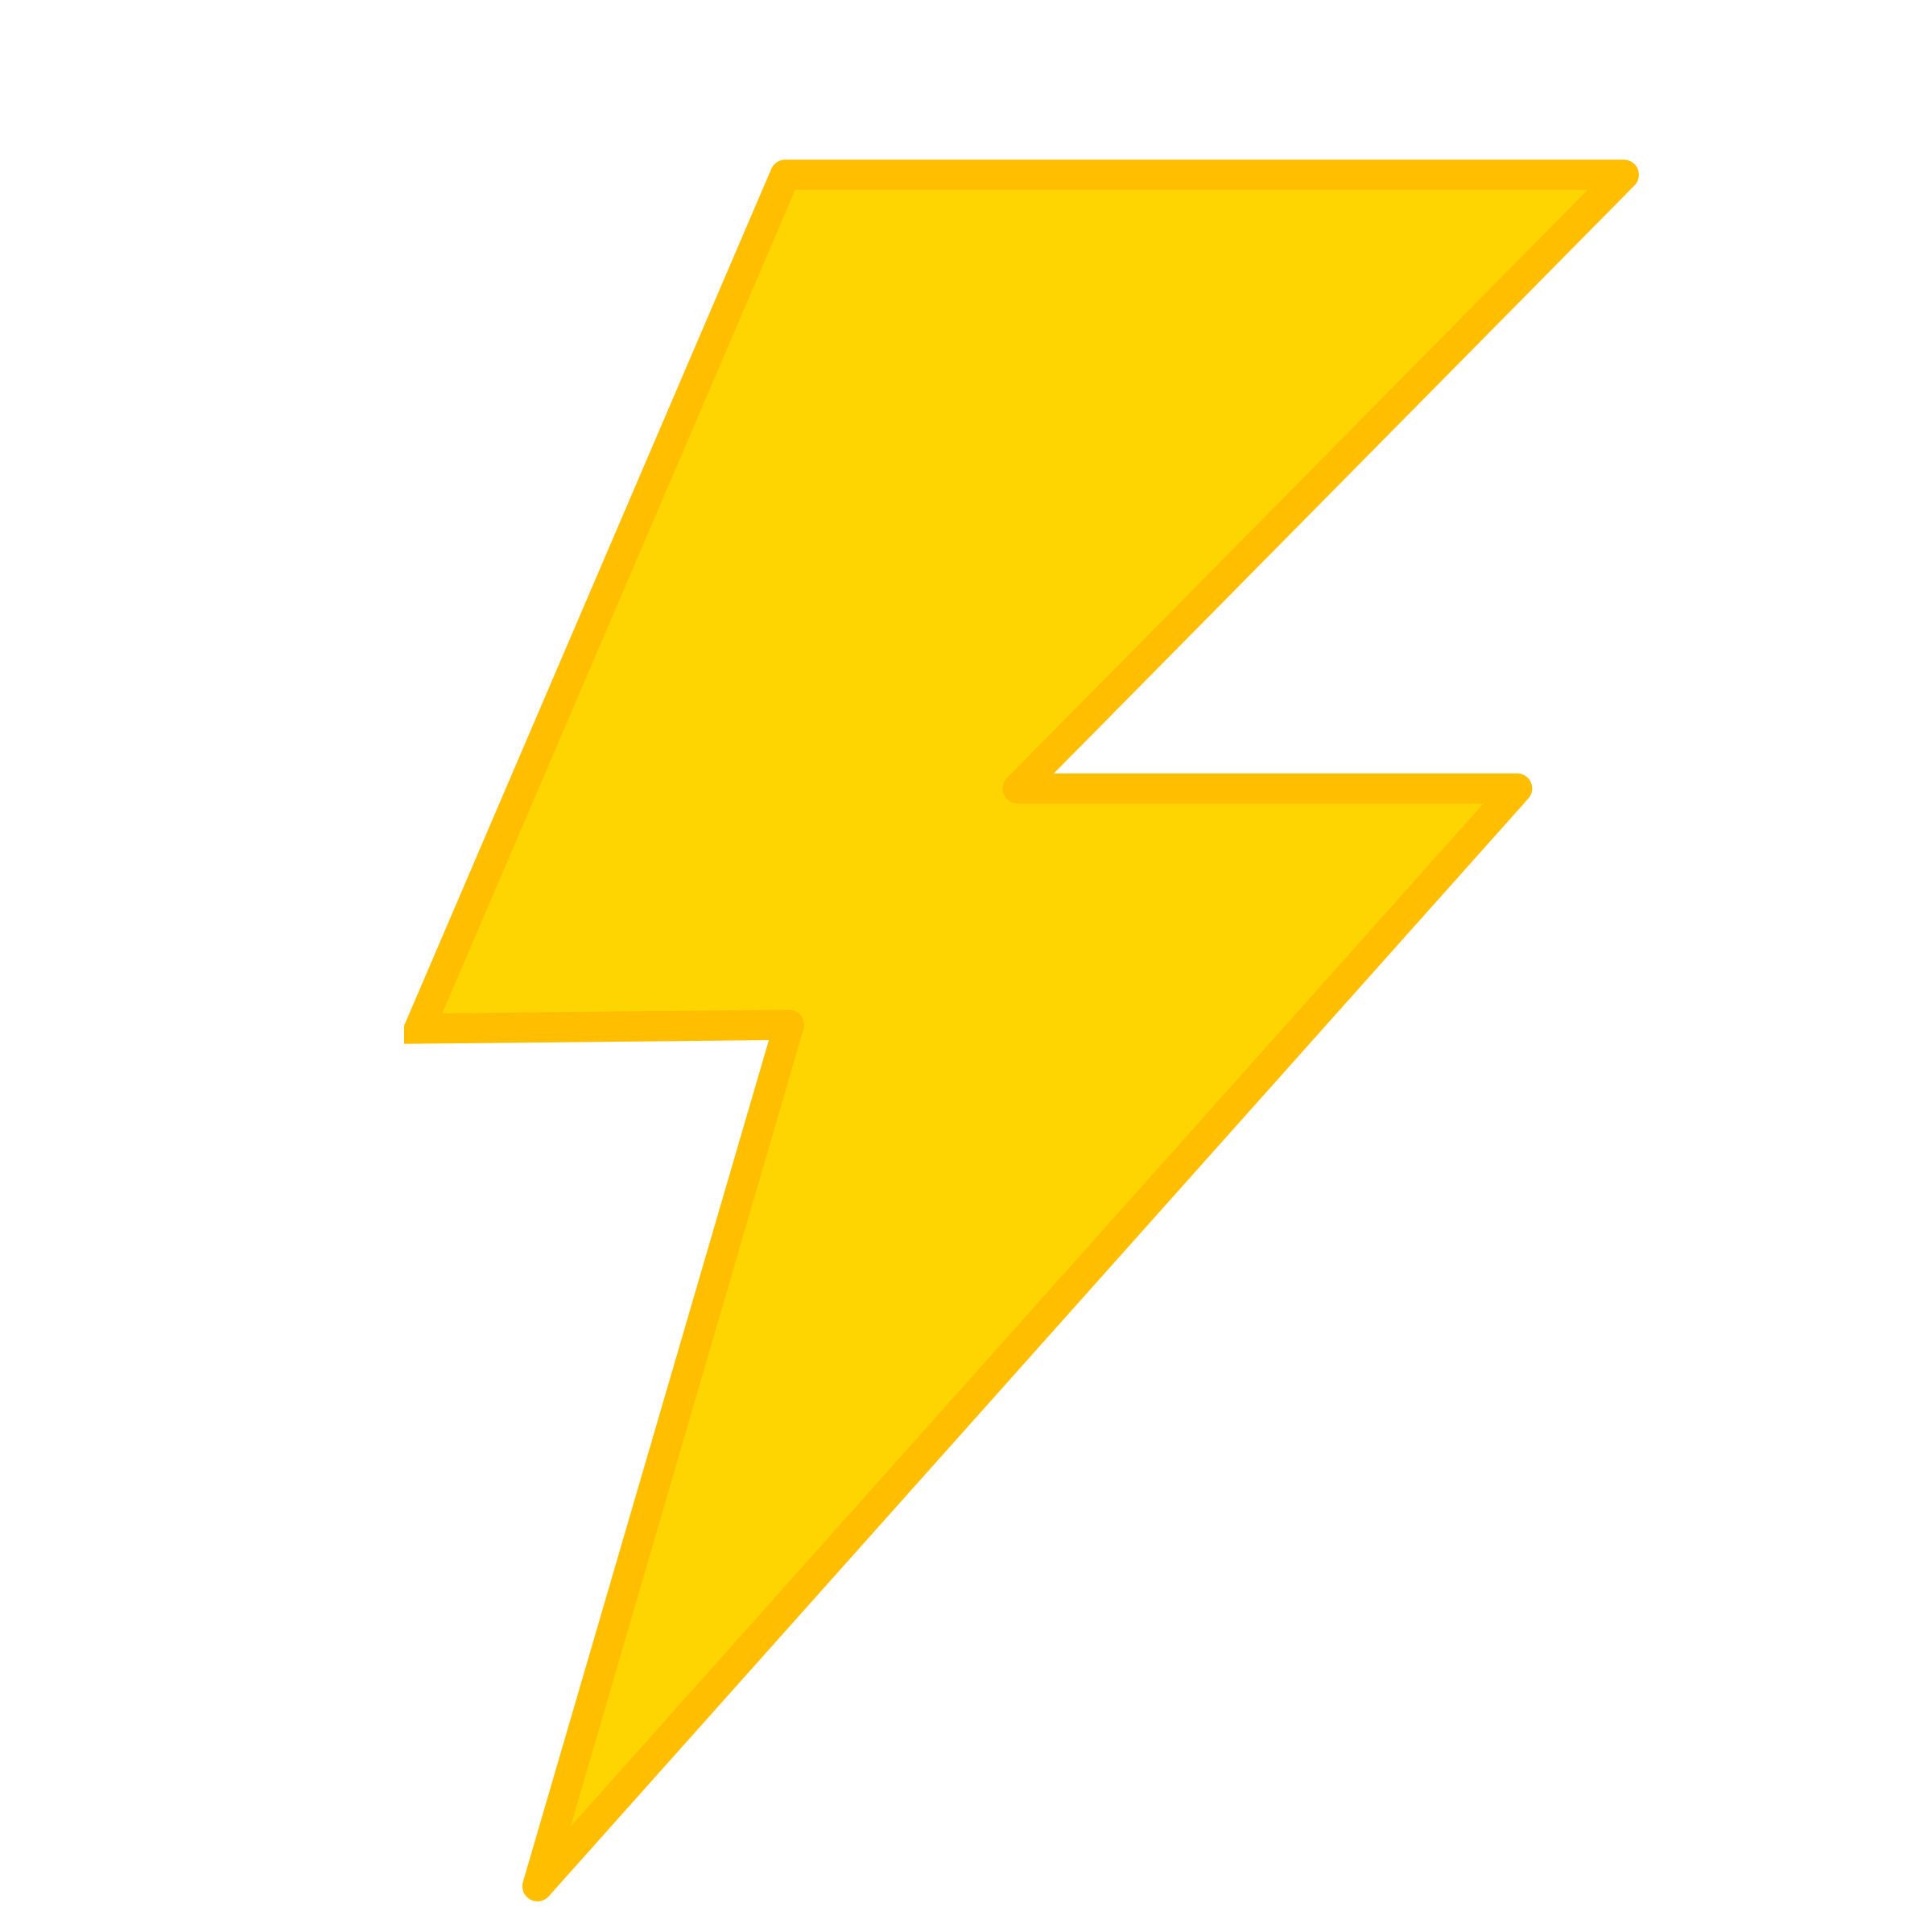 Yellow Lightning Png